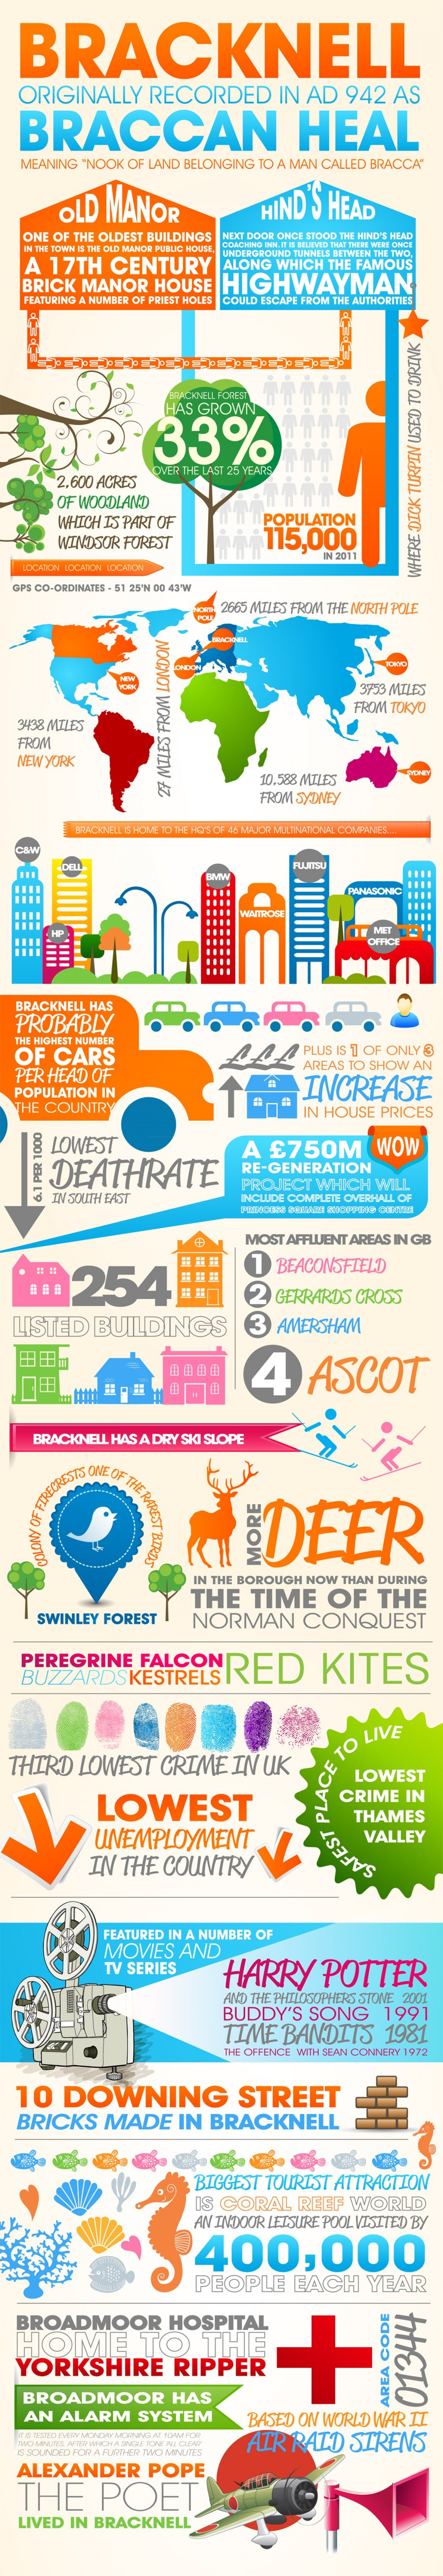 Amazing Facts About Bracknell in the UK Infographic